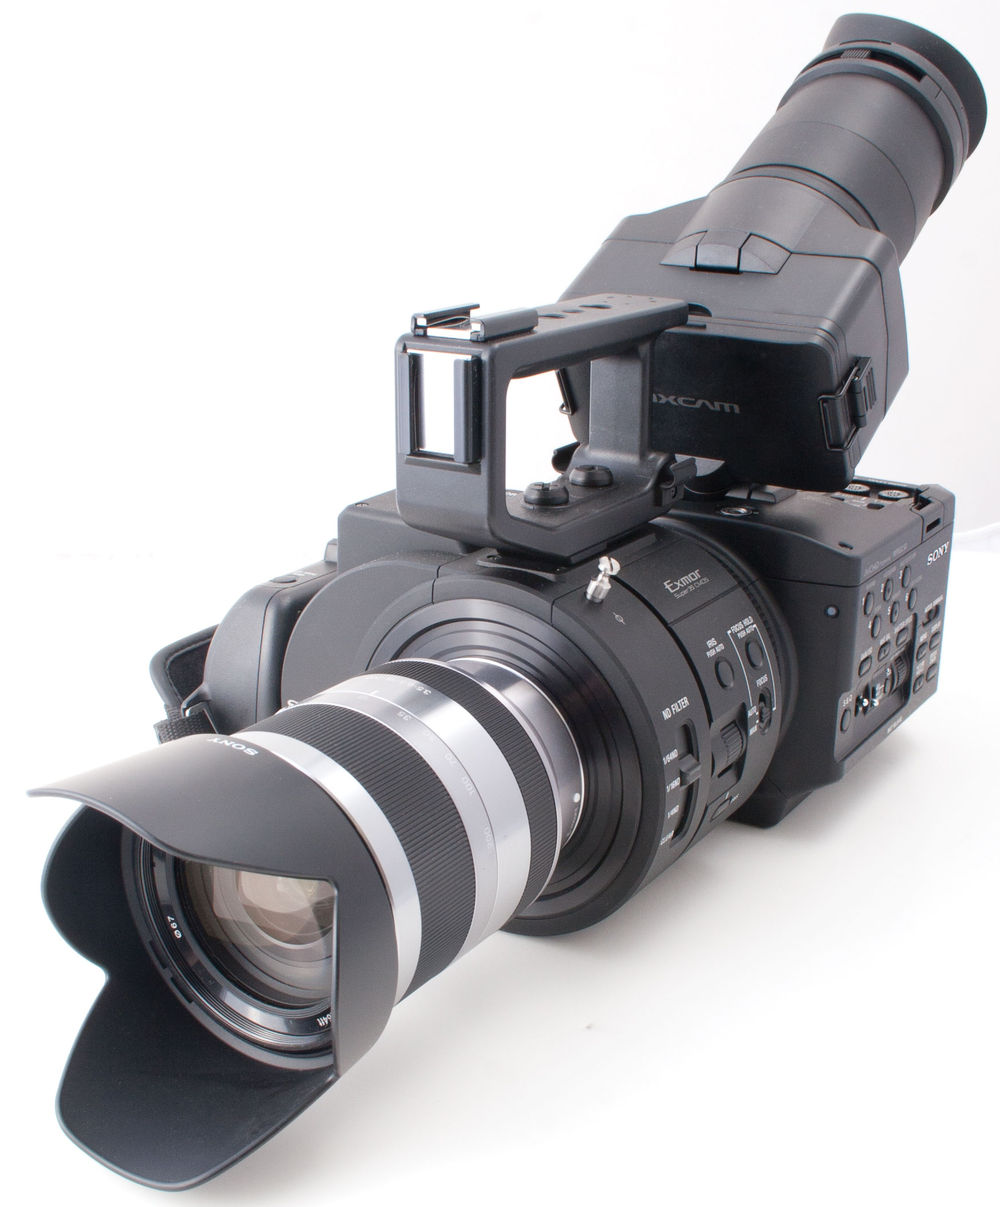 Sony-FS700-camcorder